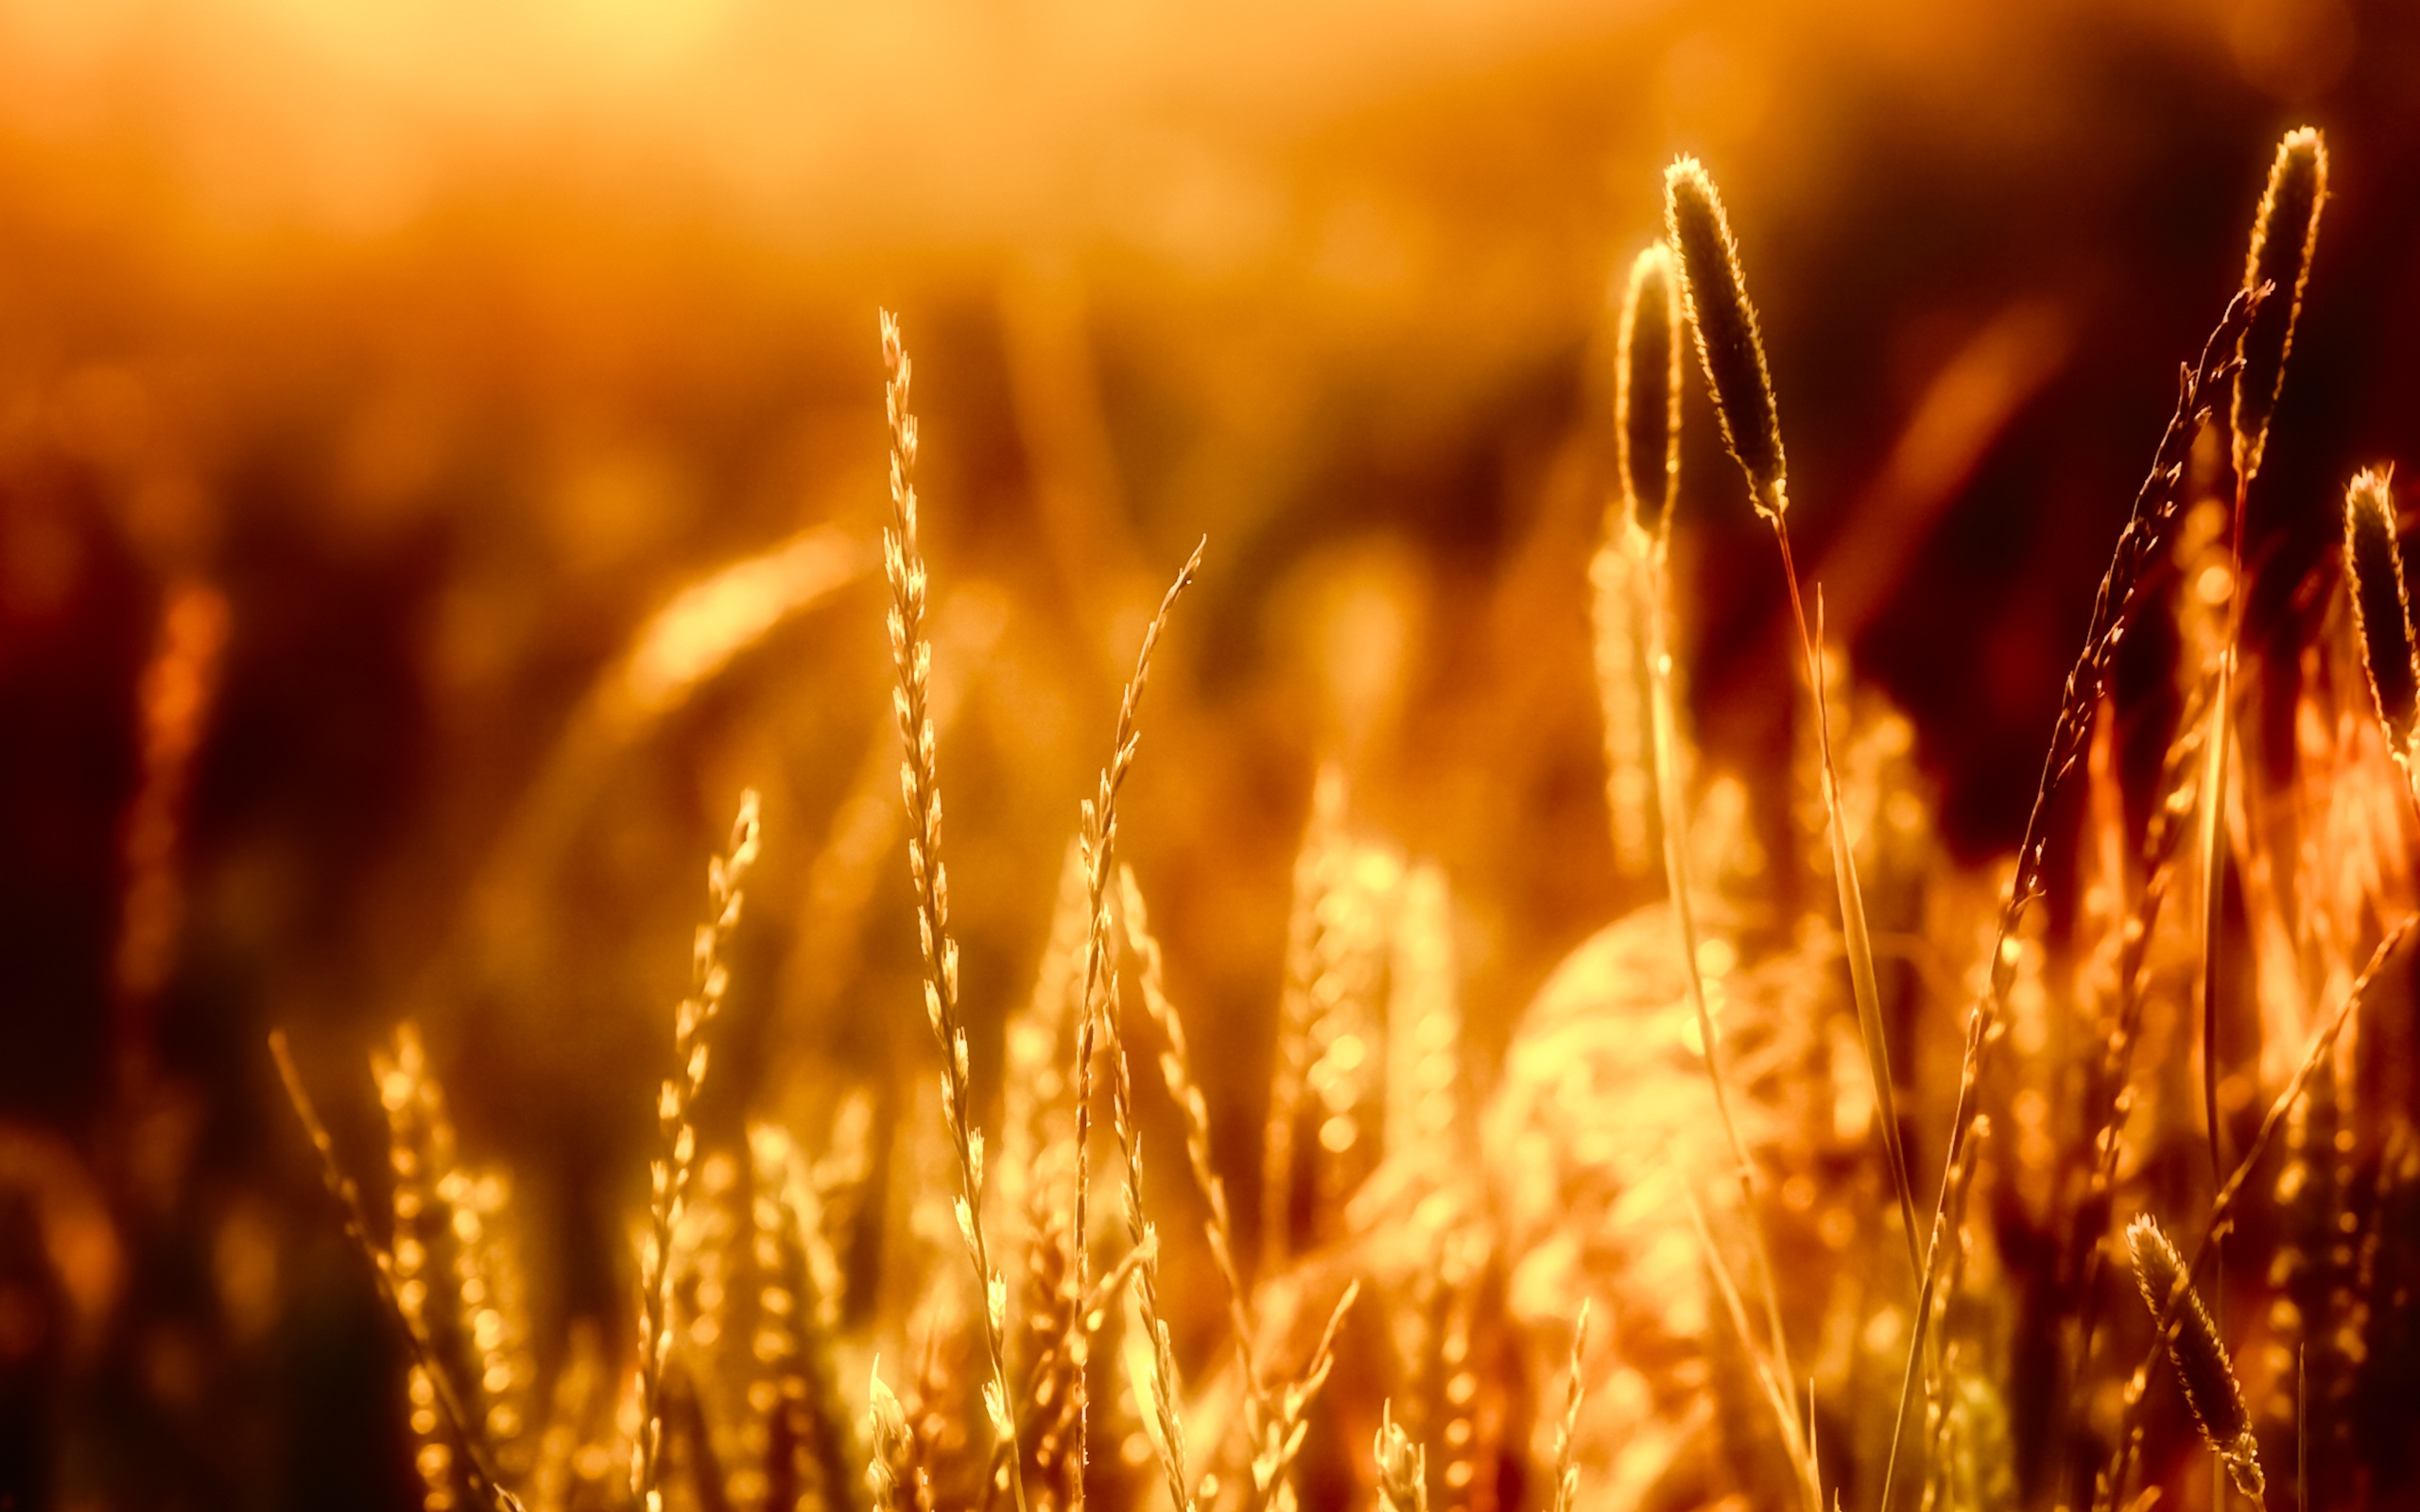 Closeup Of Grass in The Warm Sun Wallpaper Resolution 2560x1600px